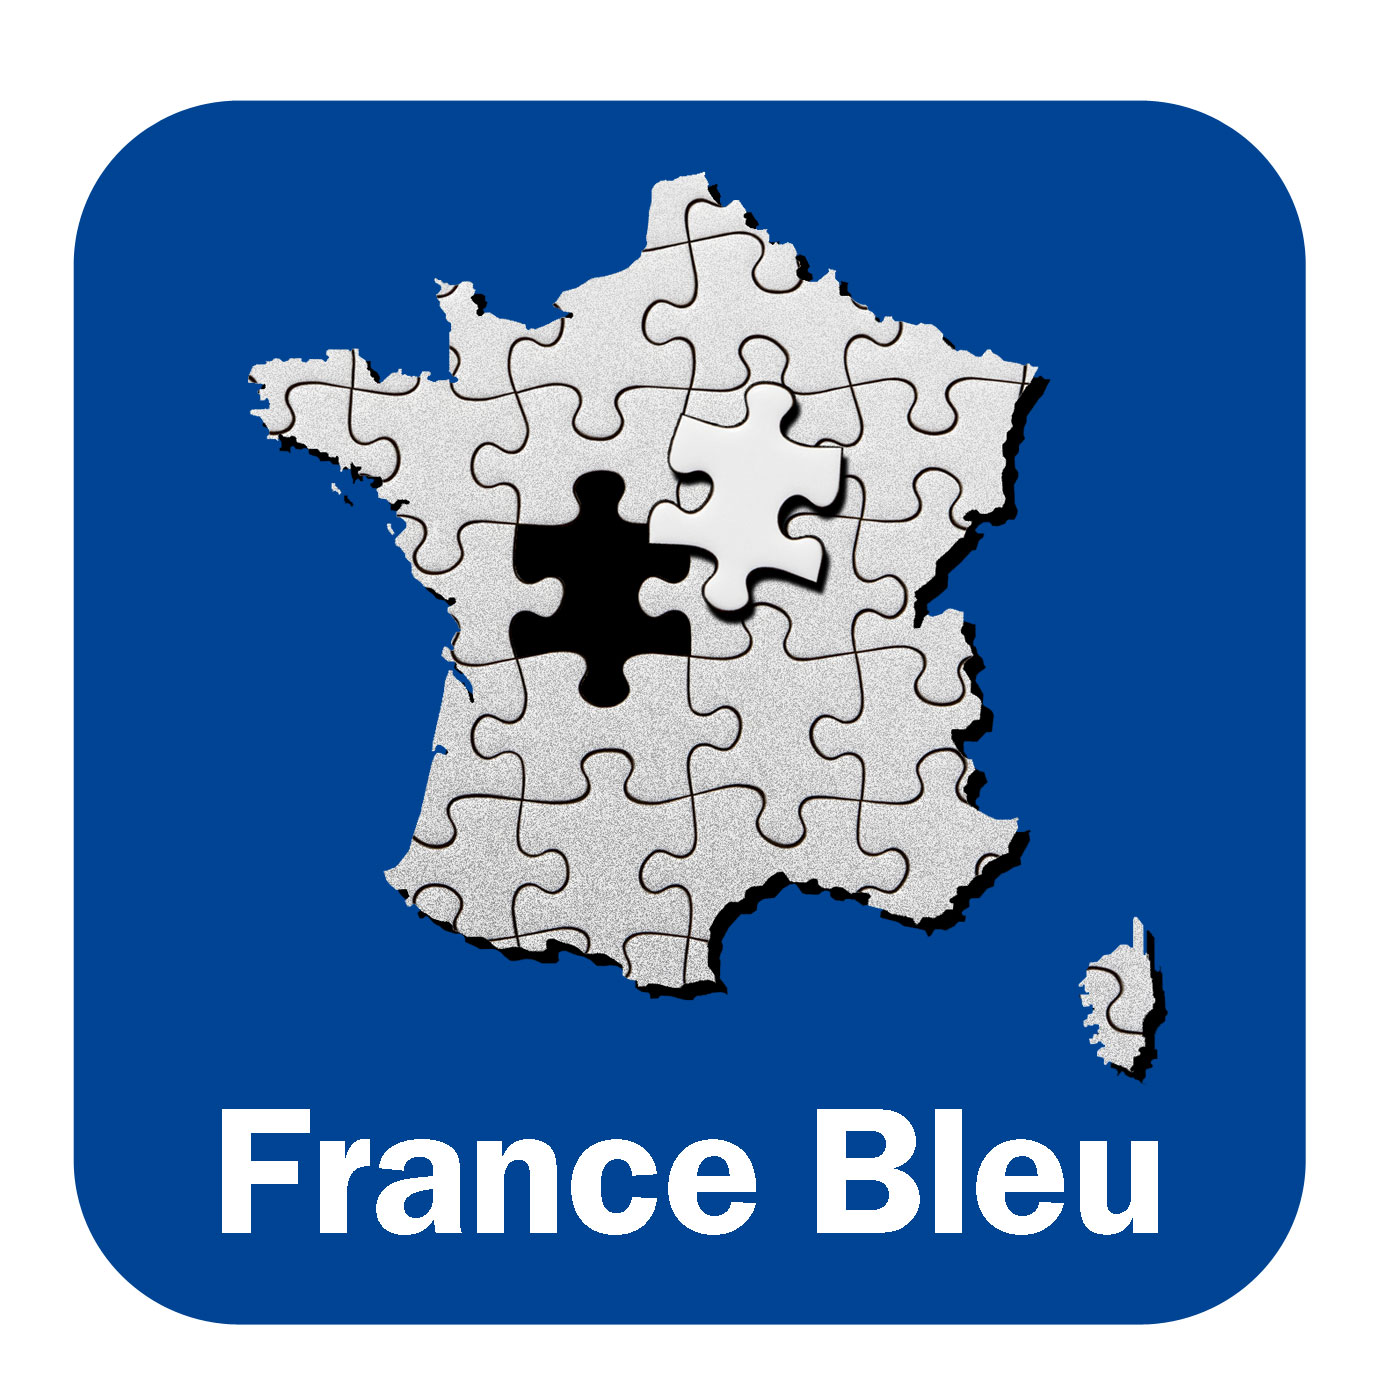 On cuisine ensemble France Bleu Azur